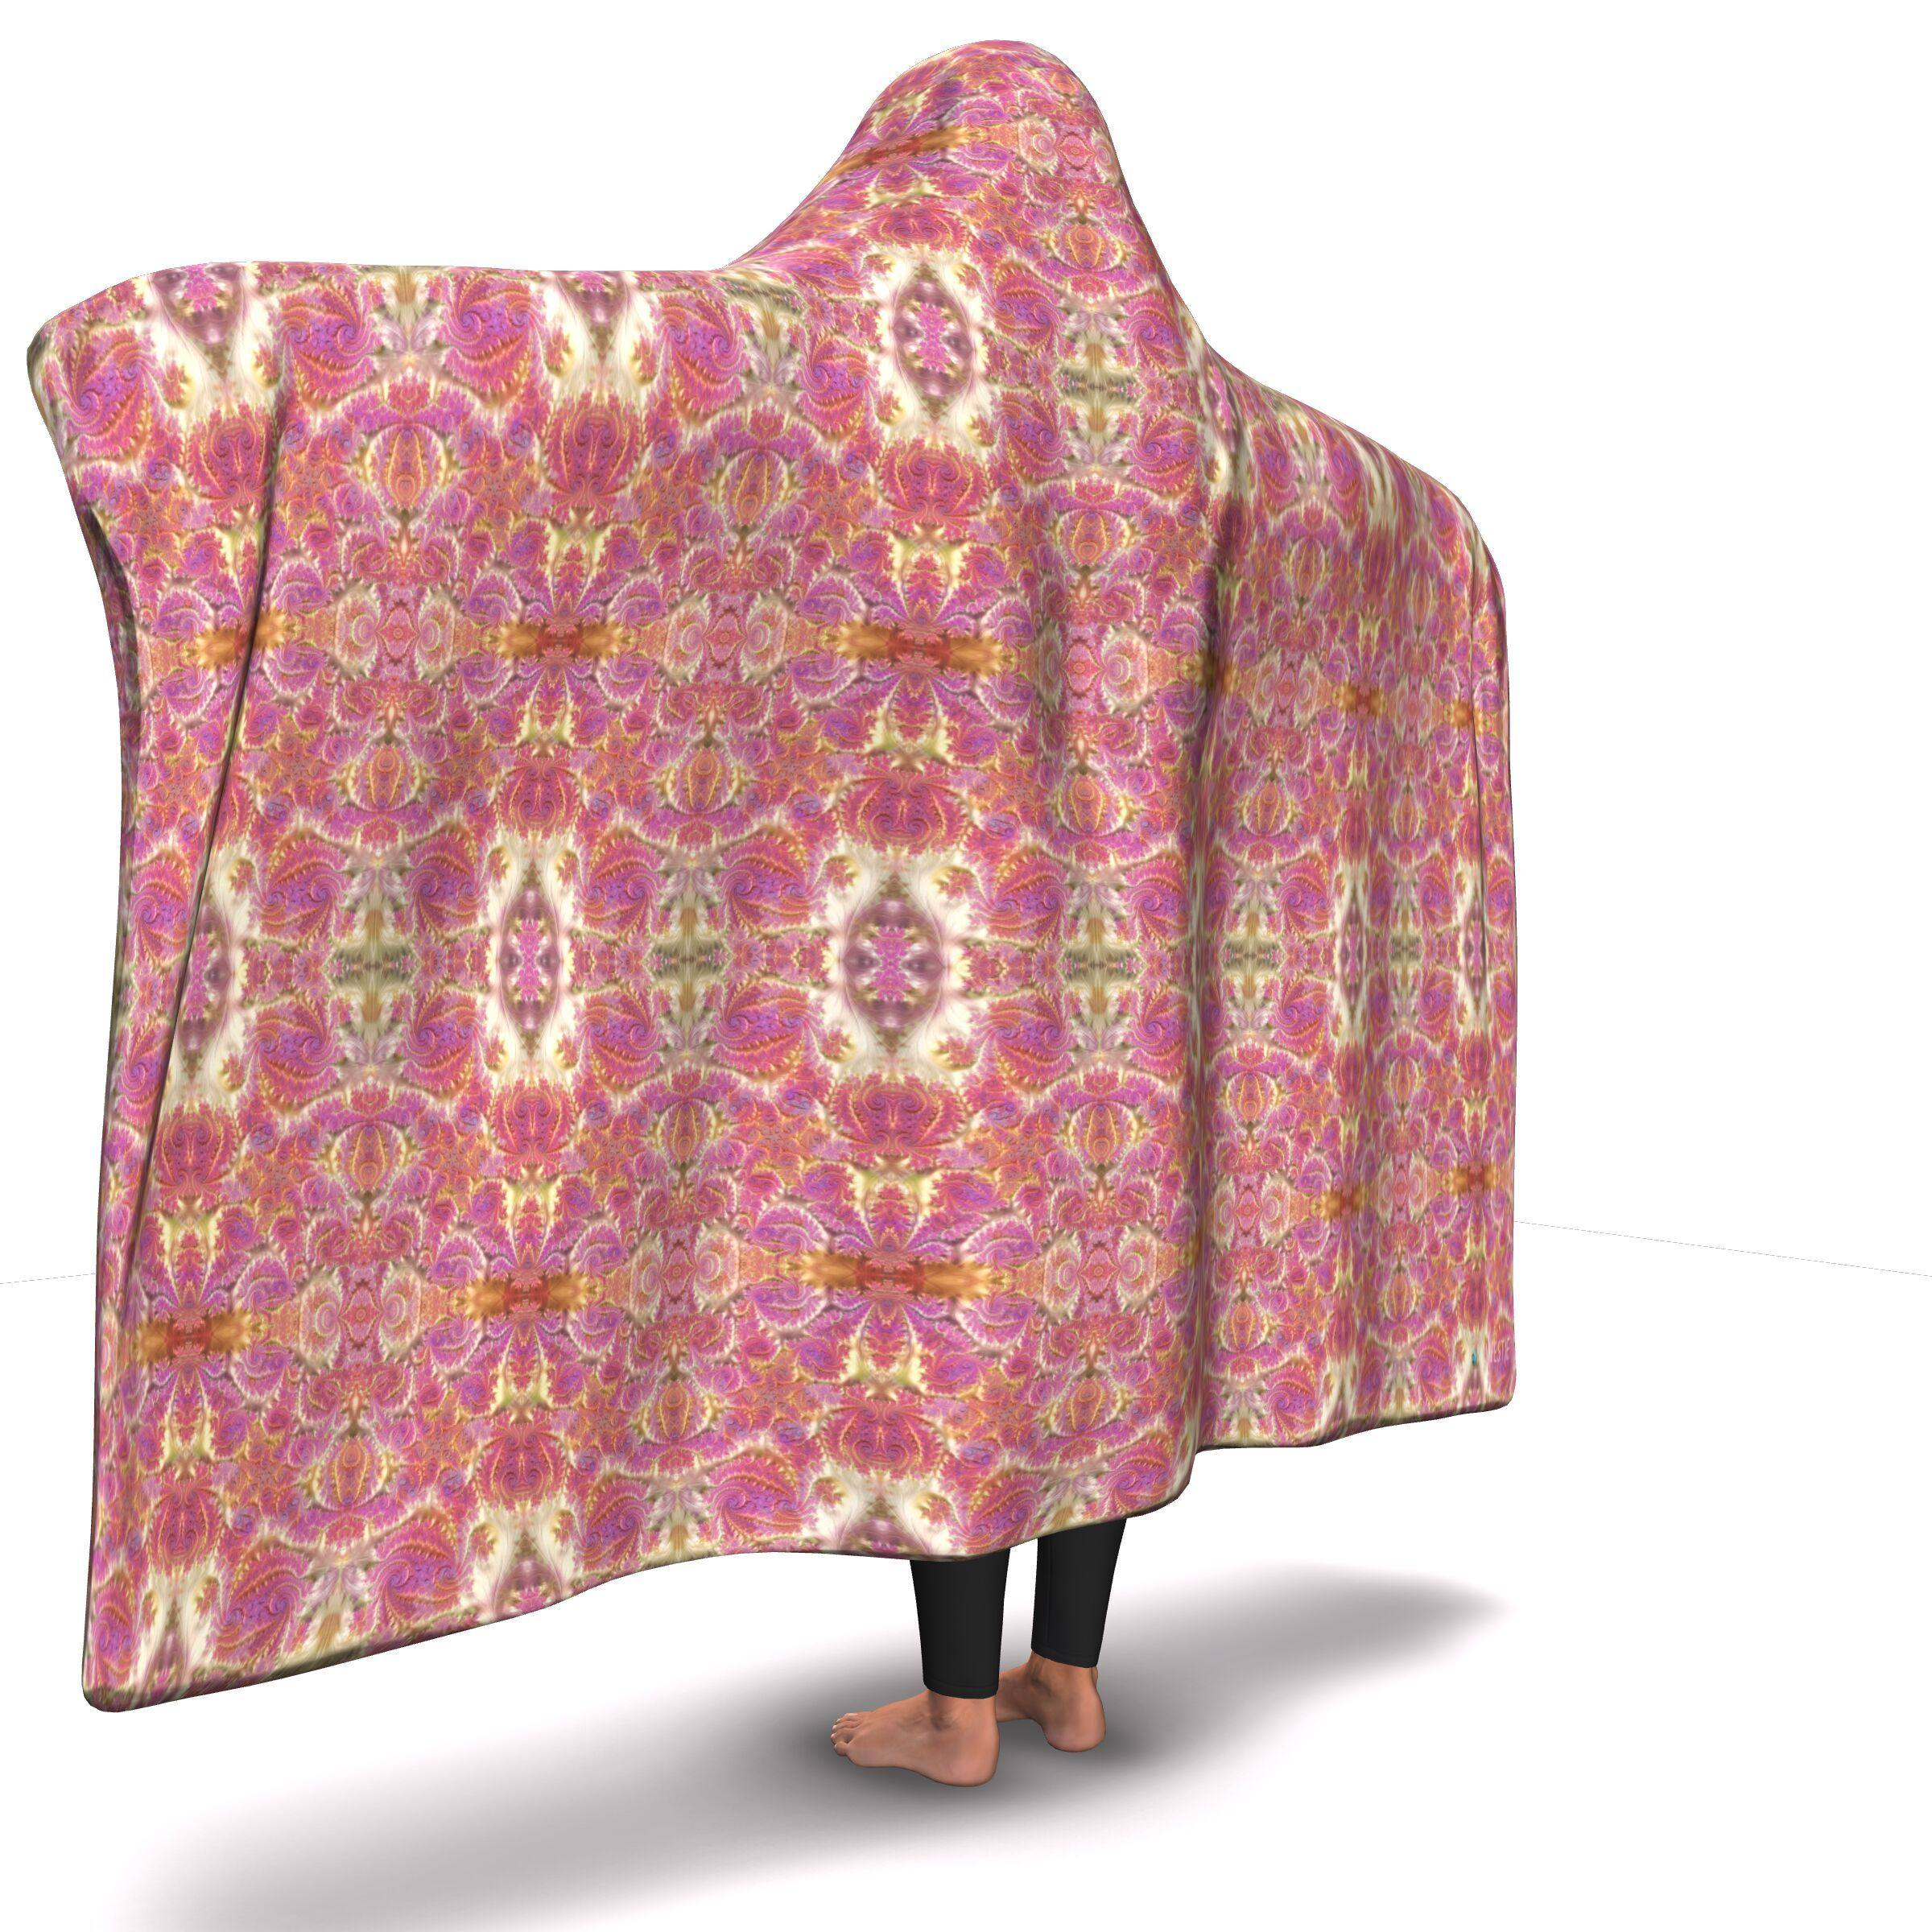 FRACTAL ROSE GOLD PREMIUM HOODED BLANKET WITH WRIST STRAPS